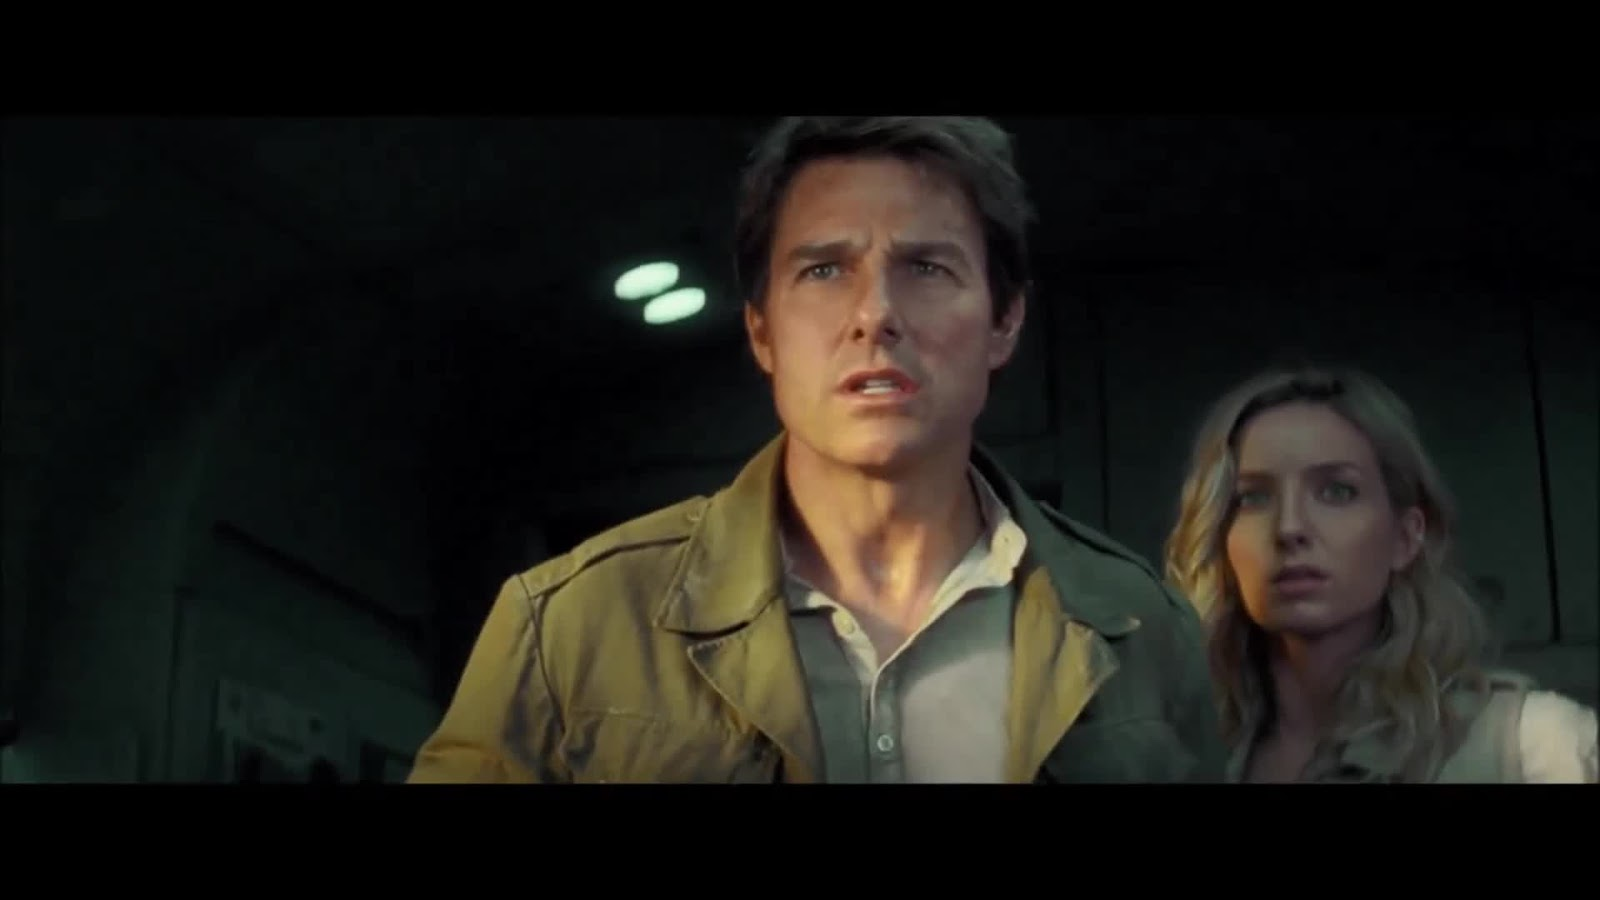 Tom Cruise Has To Stop The Ultimate Evil In The New Teaser Trailer Of The Mummy Reboot.